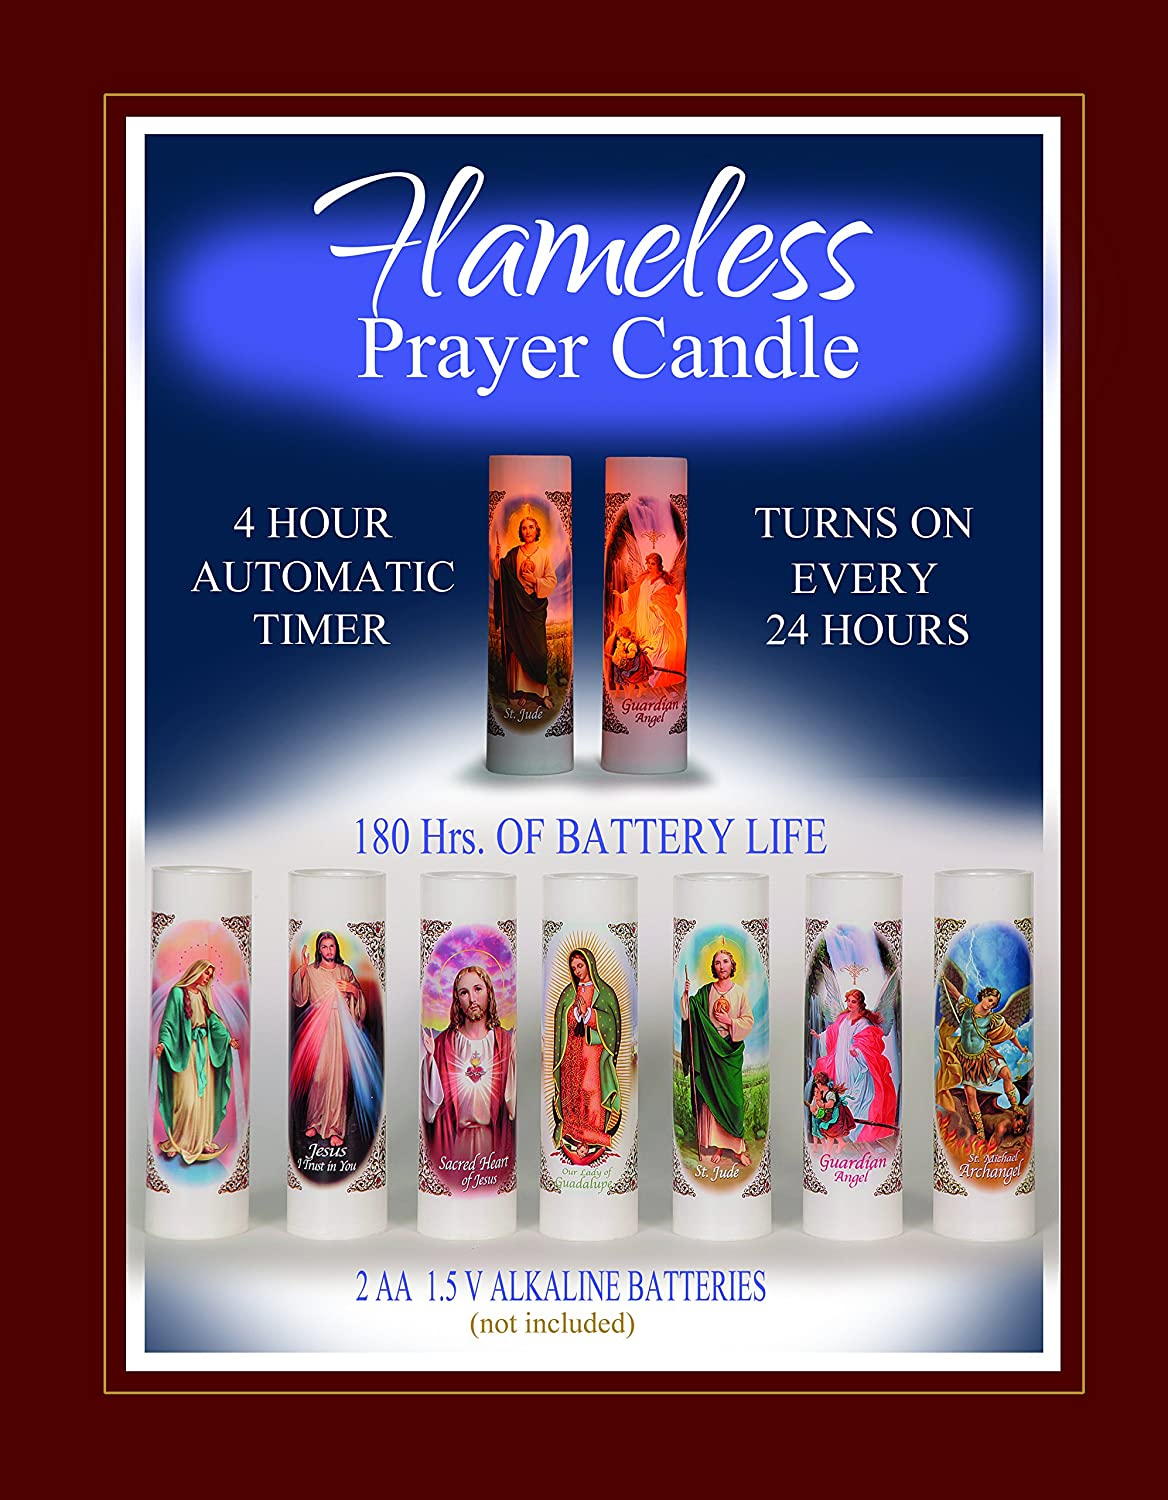 St. Jude | San Judas Tadeo | LED Flameless Prayer Candle with Automatic Timer | English & Spanish | 7-Day Novena Candlelight Vigils | Catholic Religious Gifts Bright Glow Candle Co.